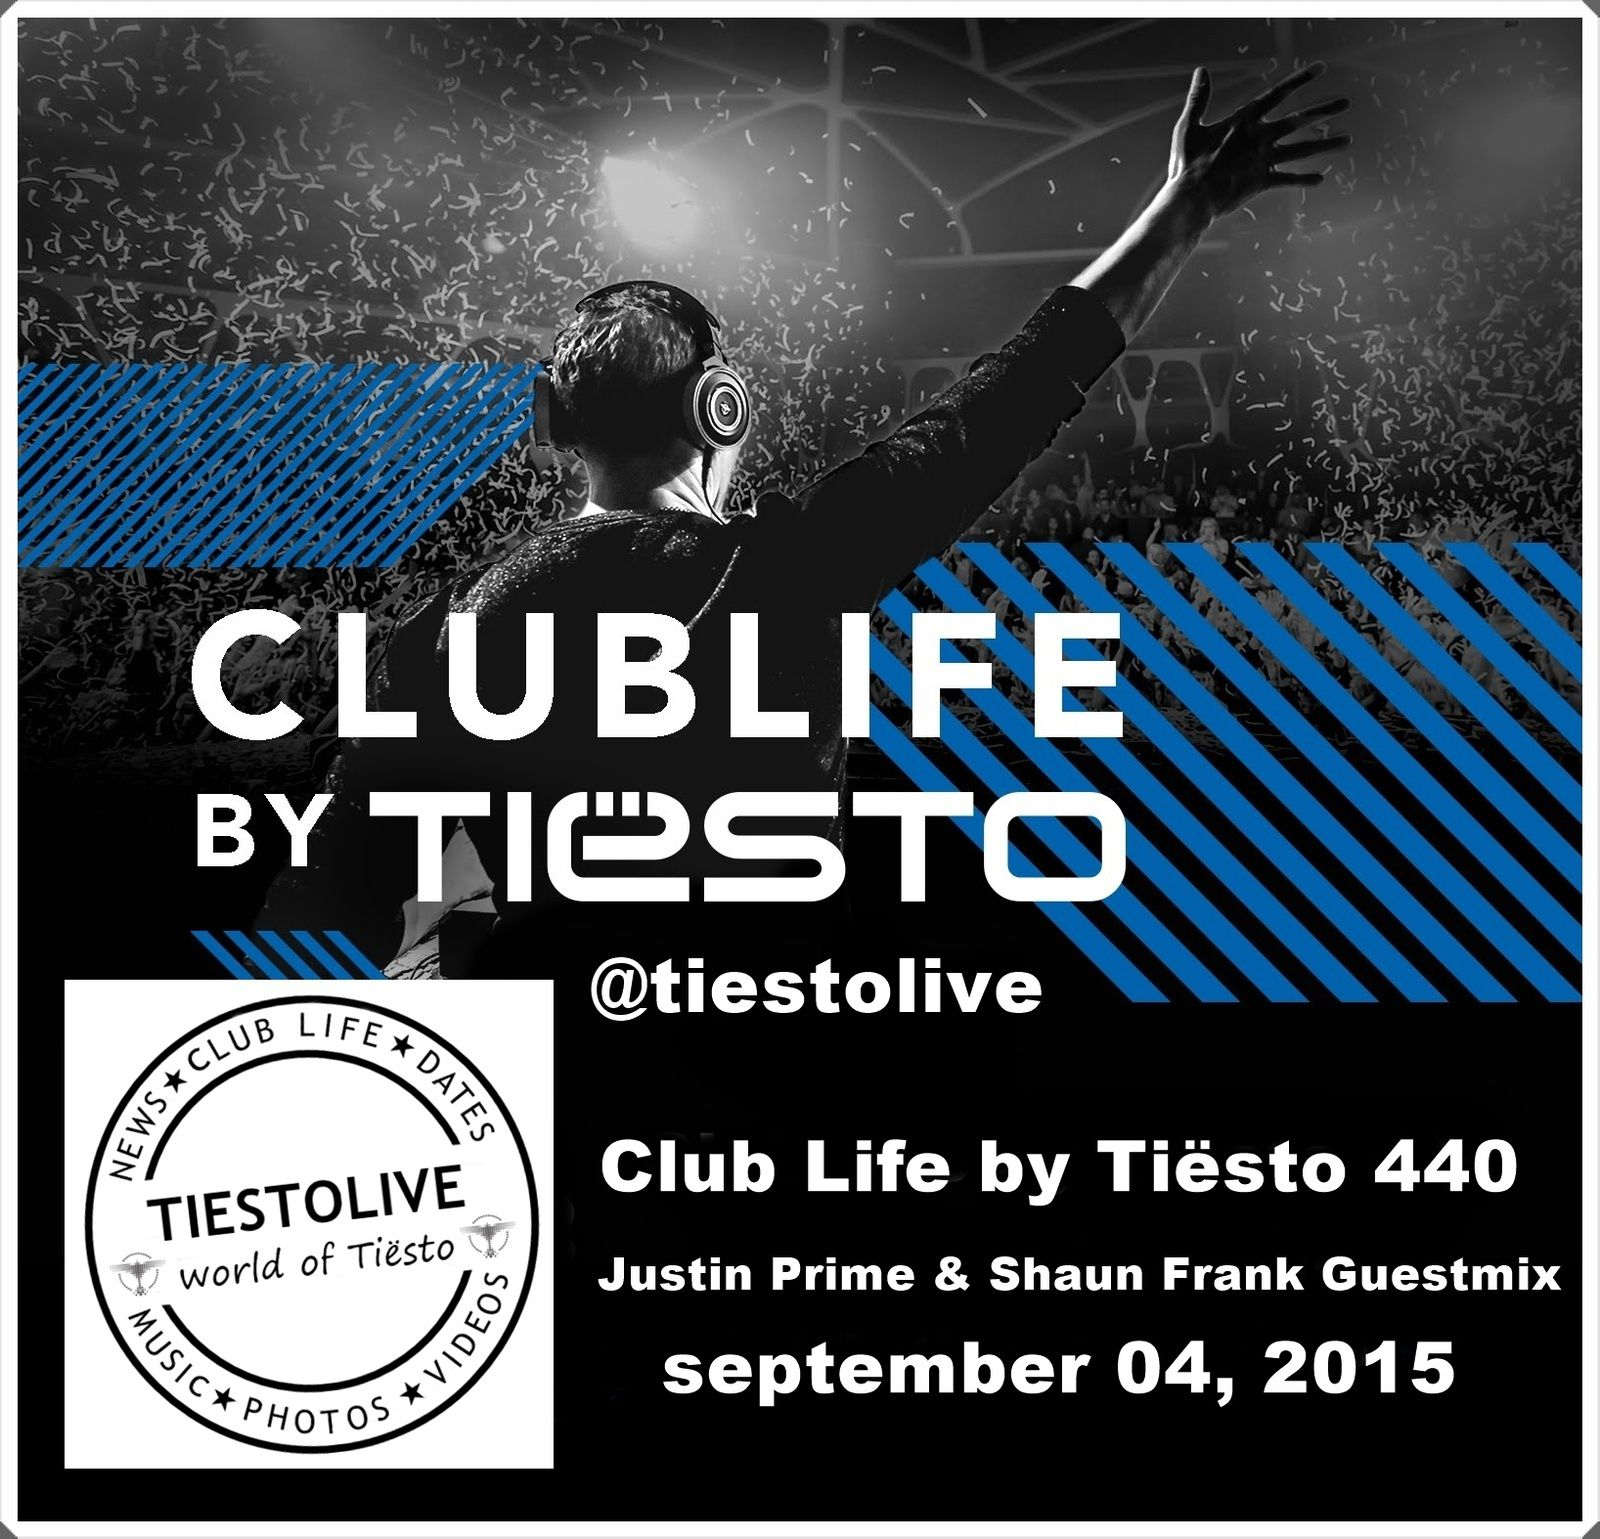 Club Life by Tiësto 440 - Justin Prime & Shaun Frank Guestmix - september 04, 2015